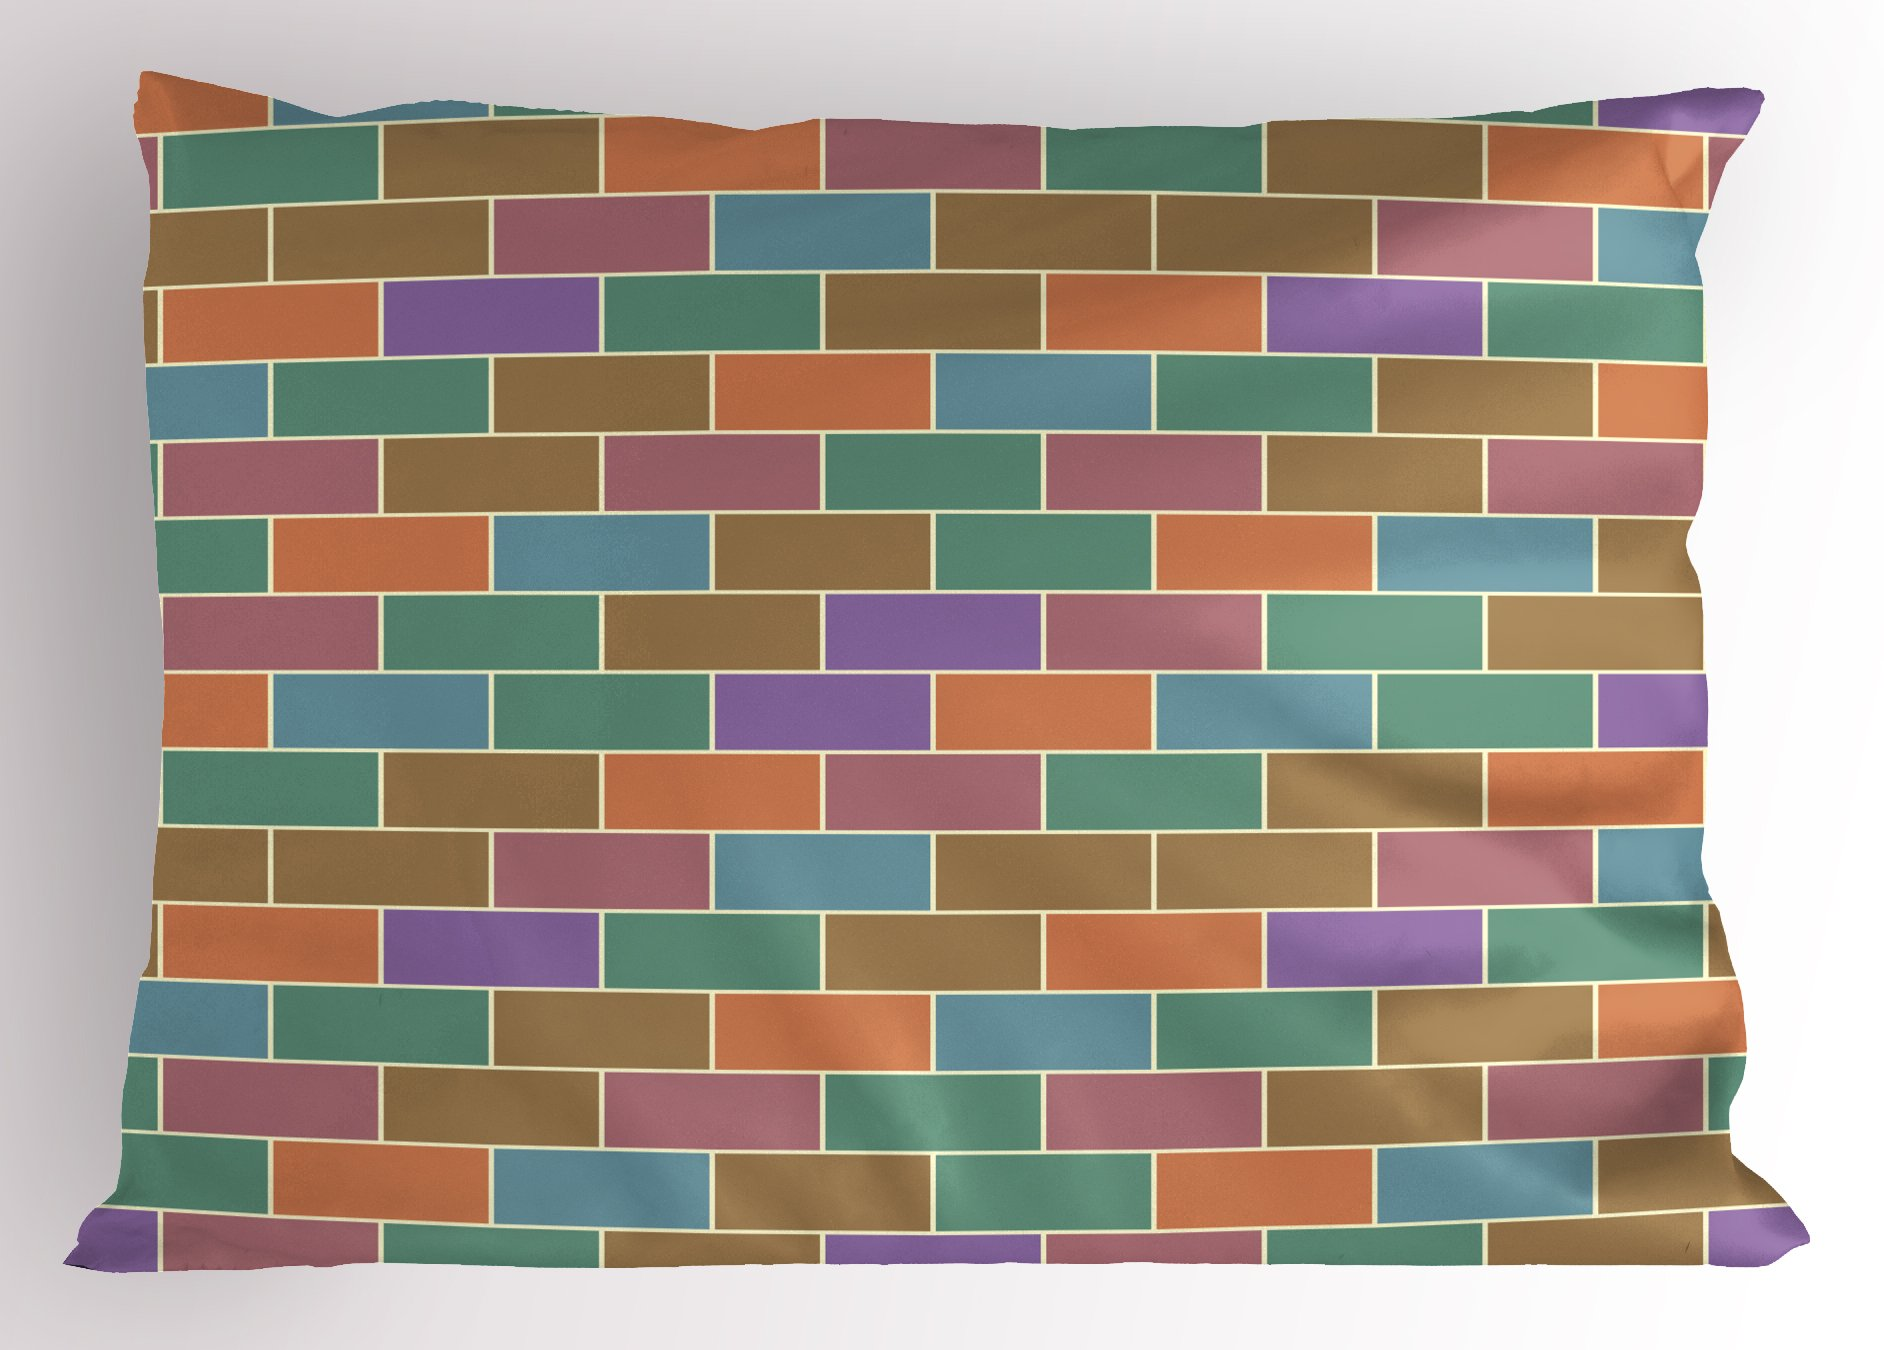 Ambesonne Colorful Pillow Sham, Vintage Brick Wall Motif Geometric Rectangles Pattern Retro Design Inspirations, Decorative Standard Size Printed Pillowcase, 26 X 20 inches, Multicolor